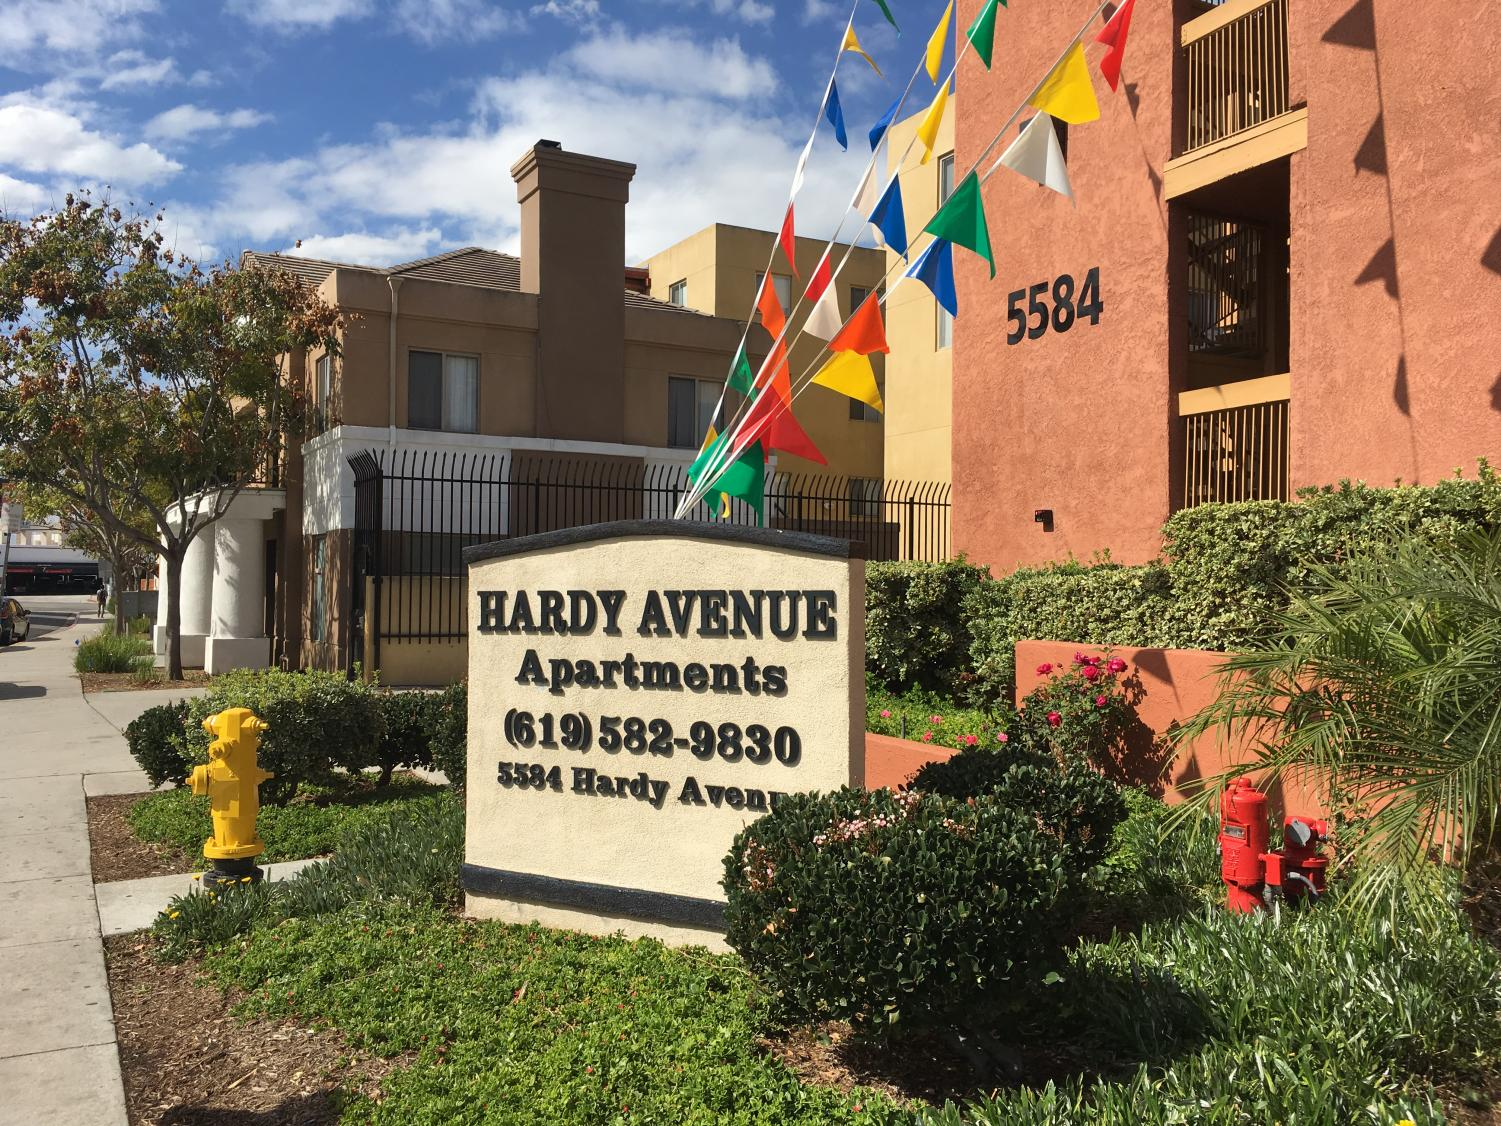 The Hardy Avenue Apartments were burglarized Monday night.